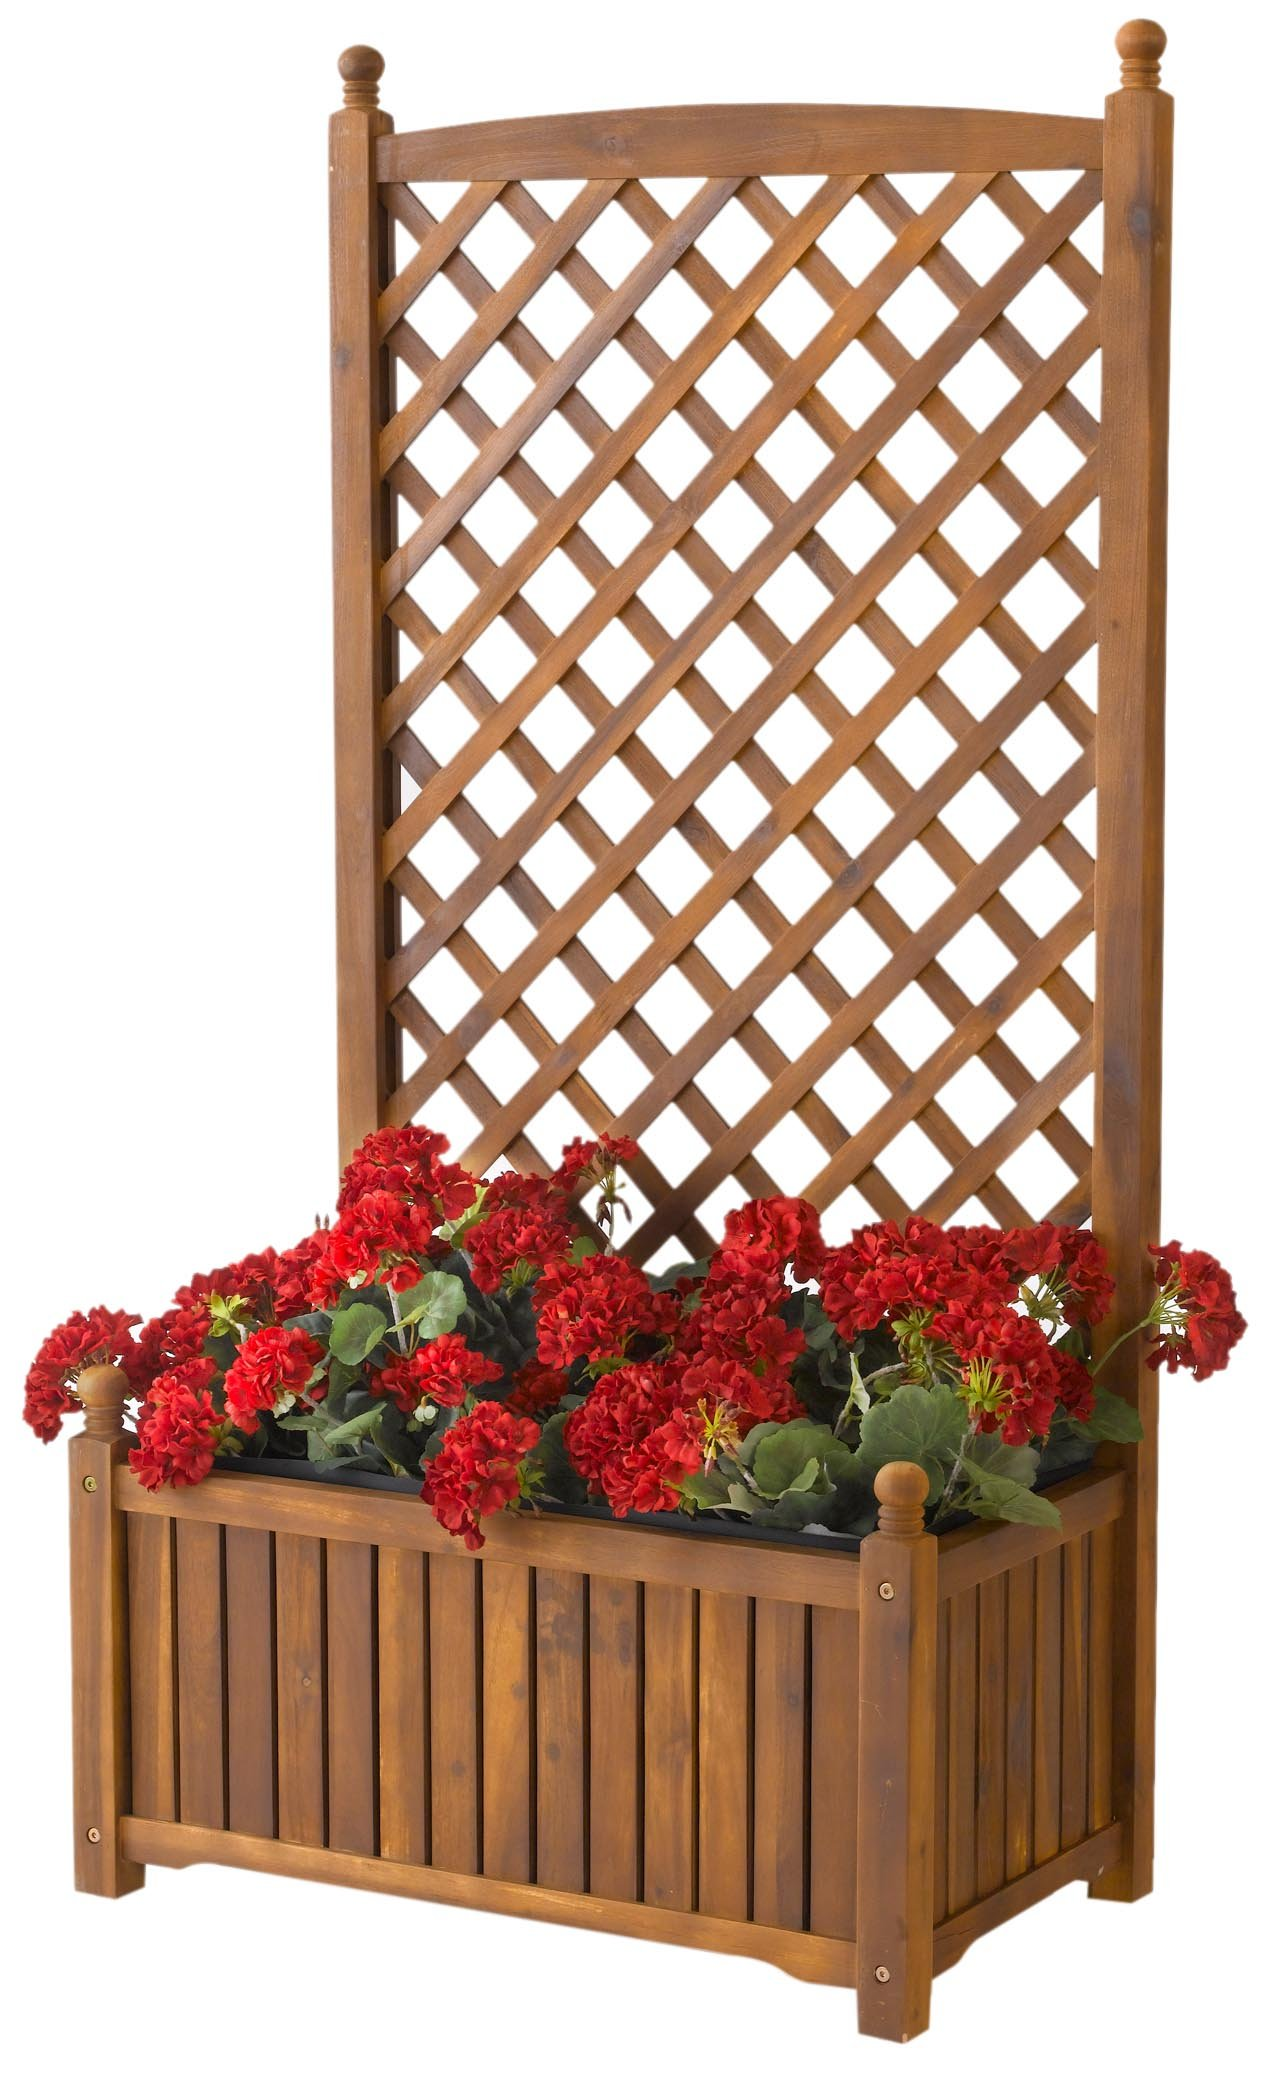 Wood planter trellis privacy screen